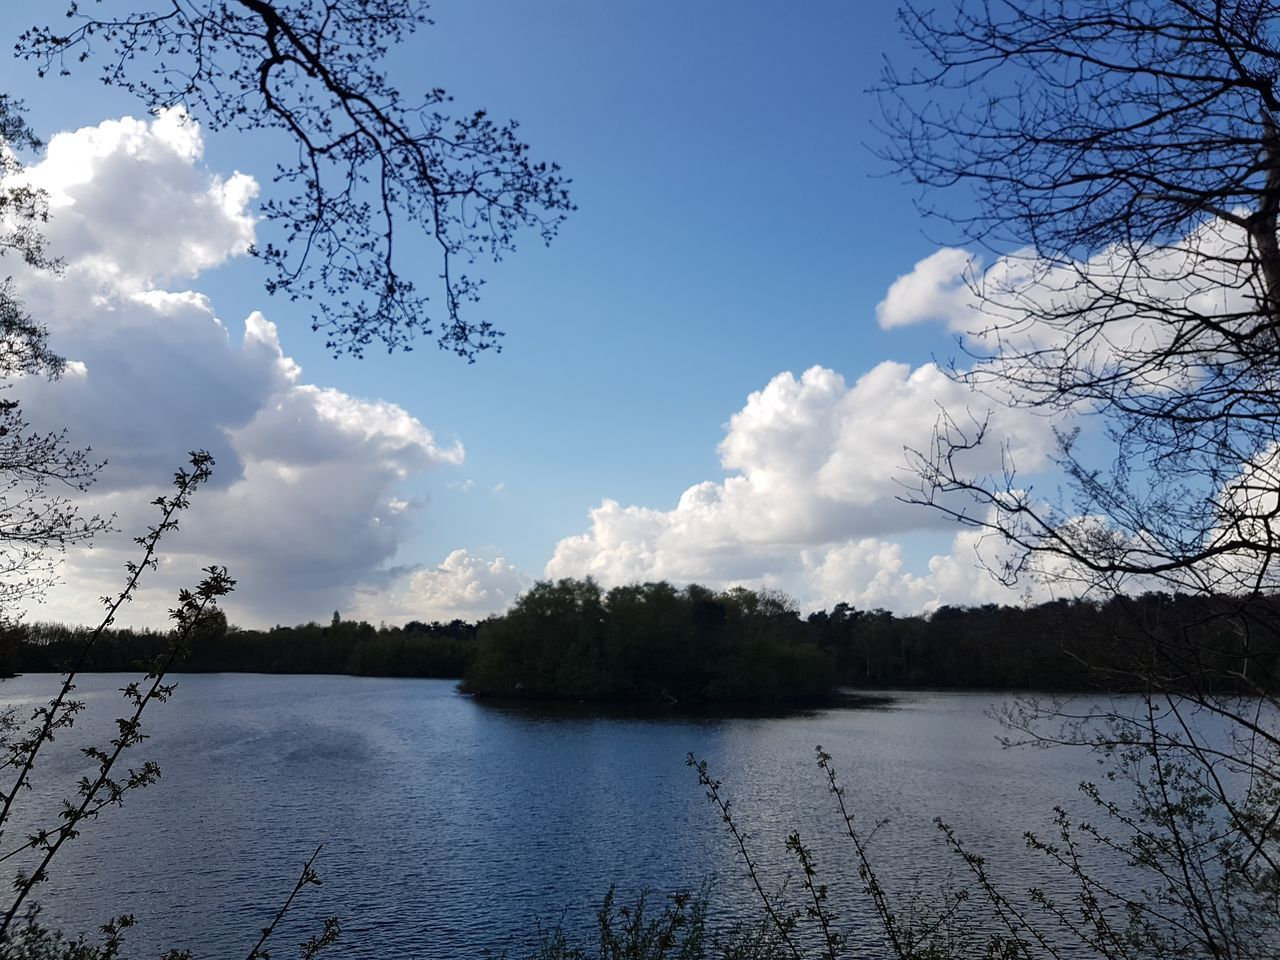 tree, nature, sky, beauty in nature, lake, tranquility, cloud - sky, no people, water, scenics, branch, outdoors, tranquil scene, day